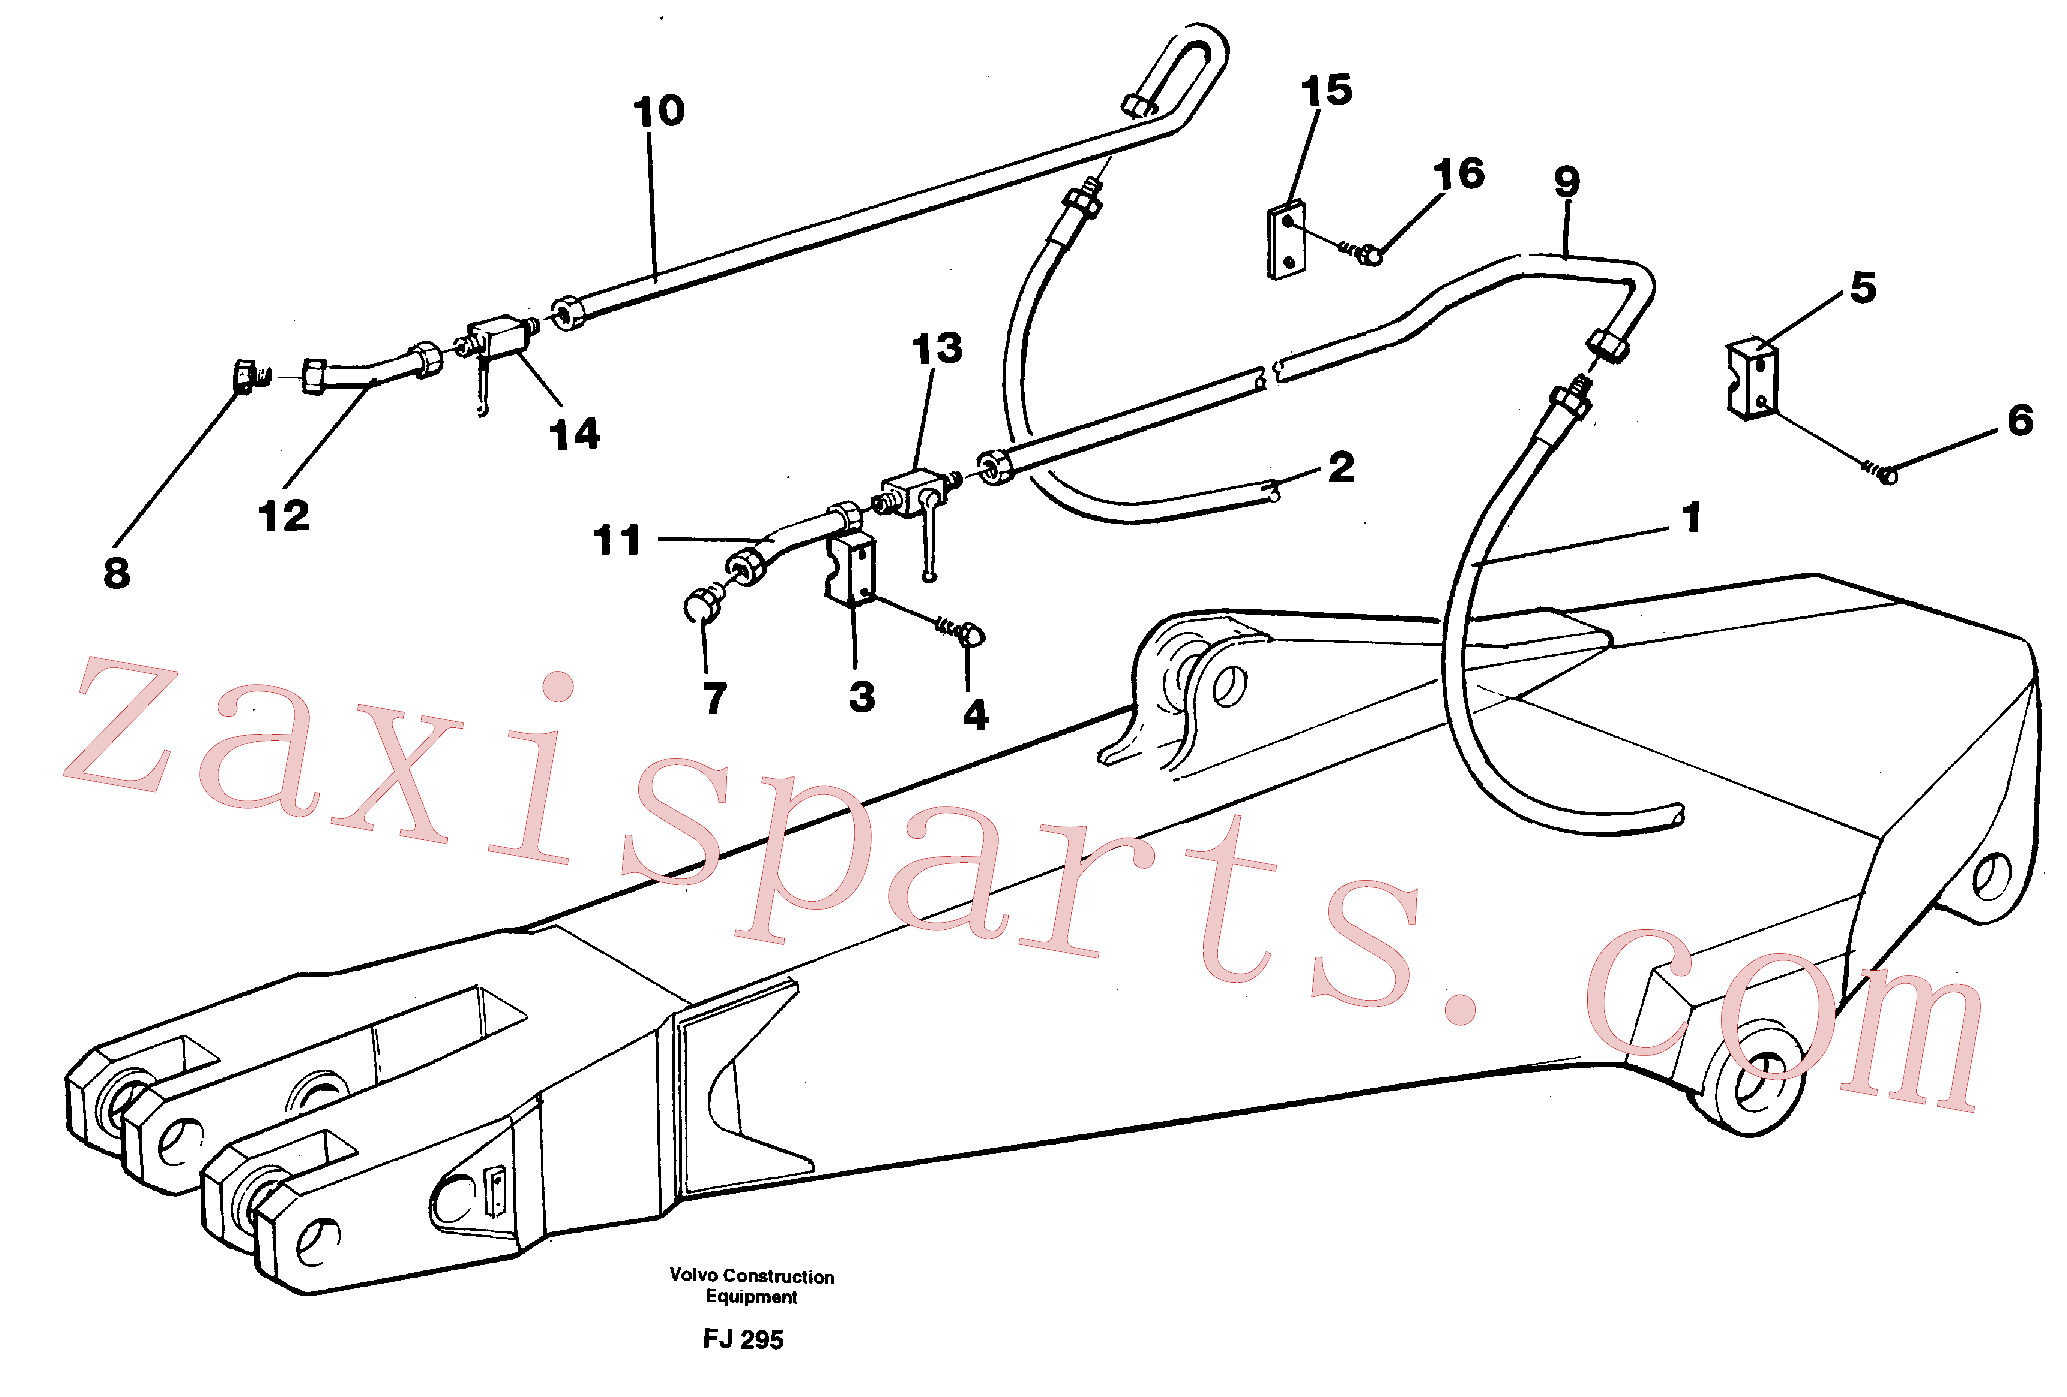 VOE14263478 for Volvo Hammer hydraulics for dipper arm incl. shut-offcocks.(FJ295 assembly)